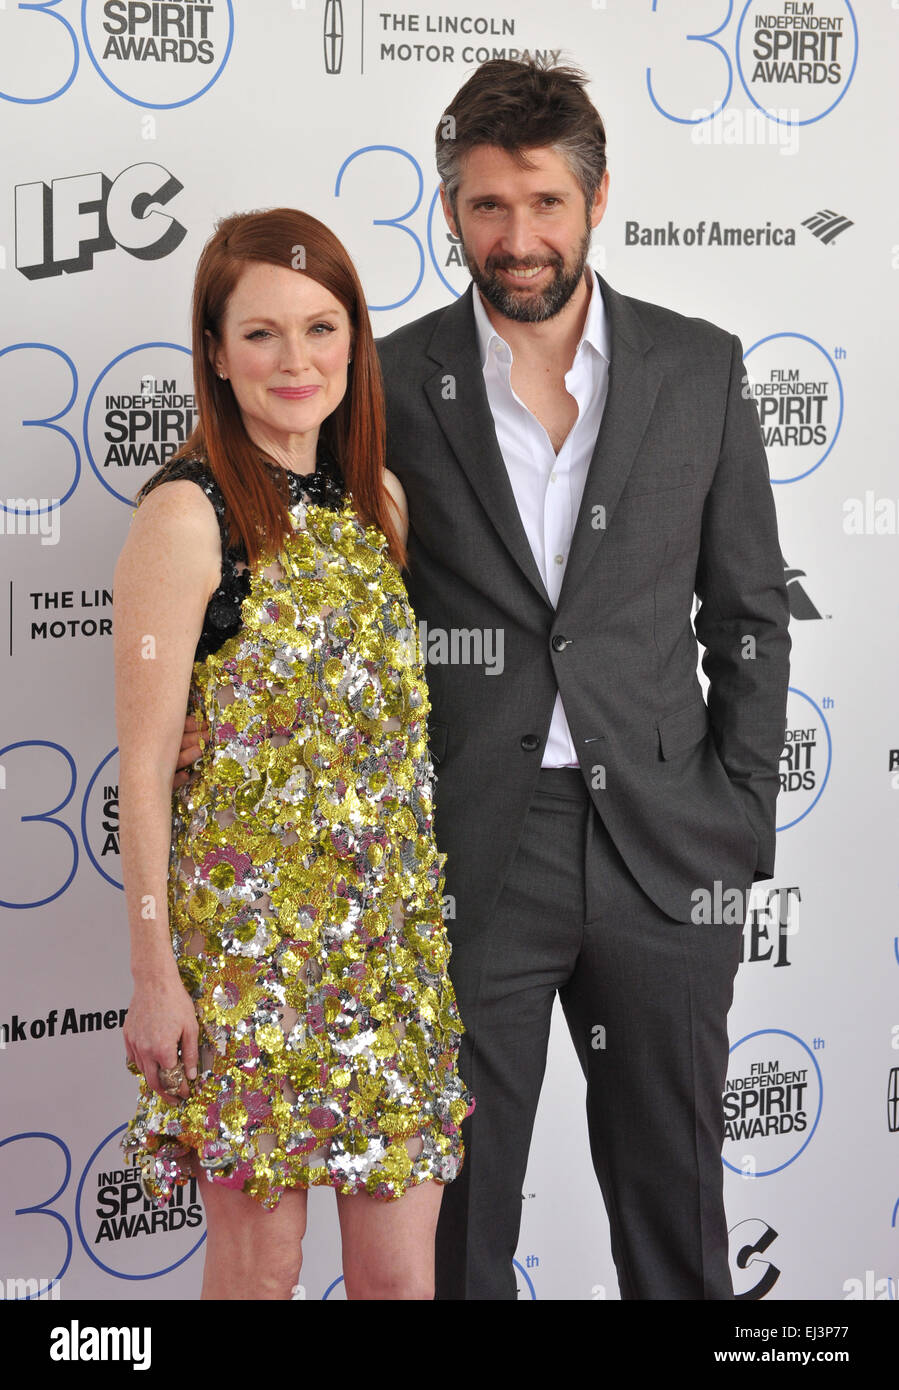 SANTA MONICA, CA - FEBRUARY 21, 2015: Julianne Moore & Bart Freundlich at the 30th Annual Film Independent Spirit - Stock Image